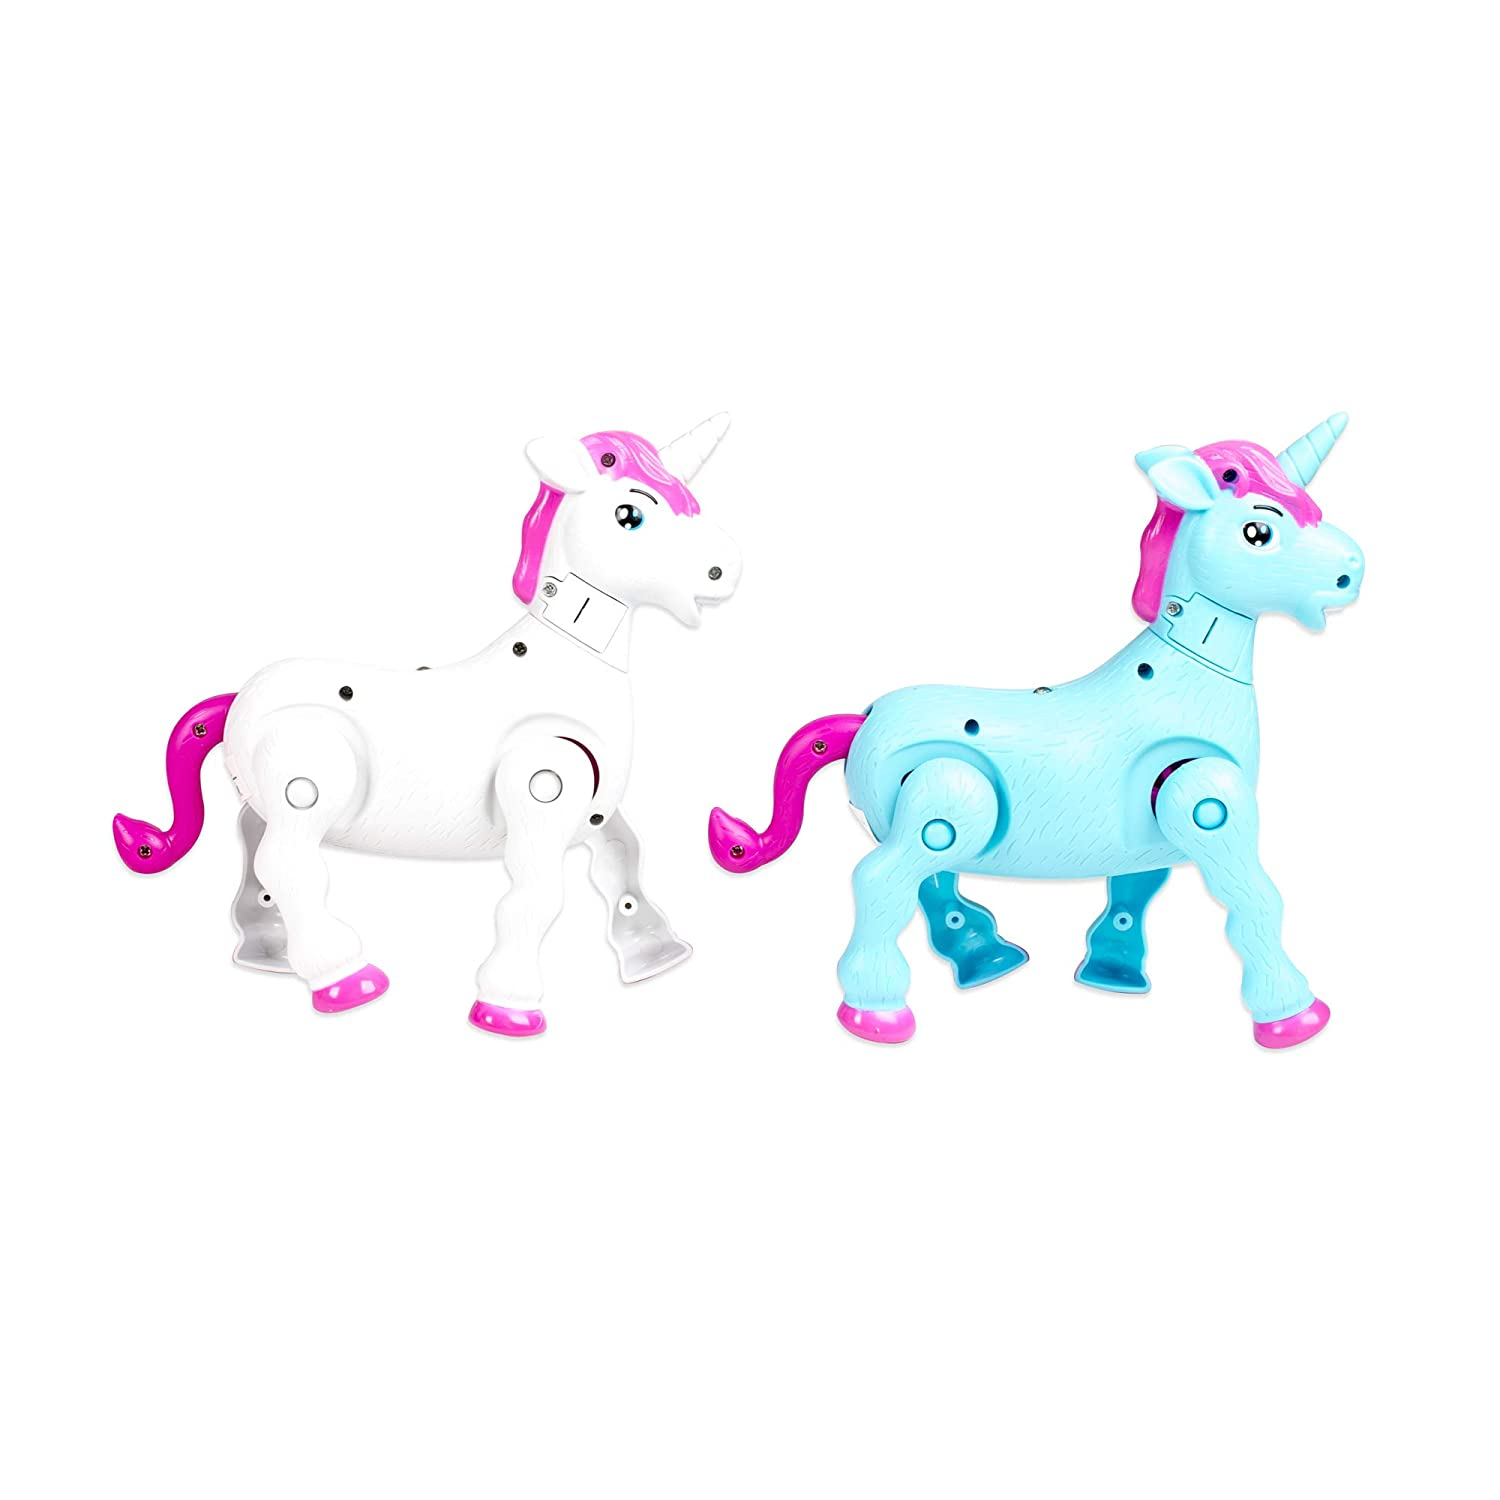 Pink White and Blue Master Toys /& Novelties SG/_B075ZHMRT2/_US Set of 3 Prancing Magical Unicorns with Sound 7 Inch Toys